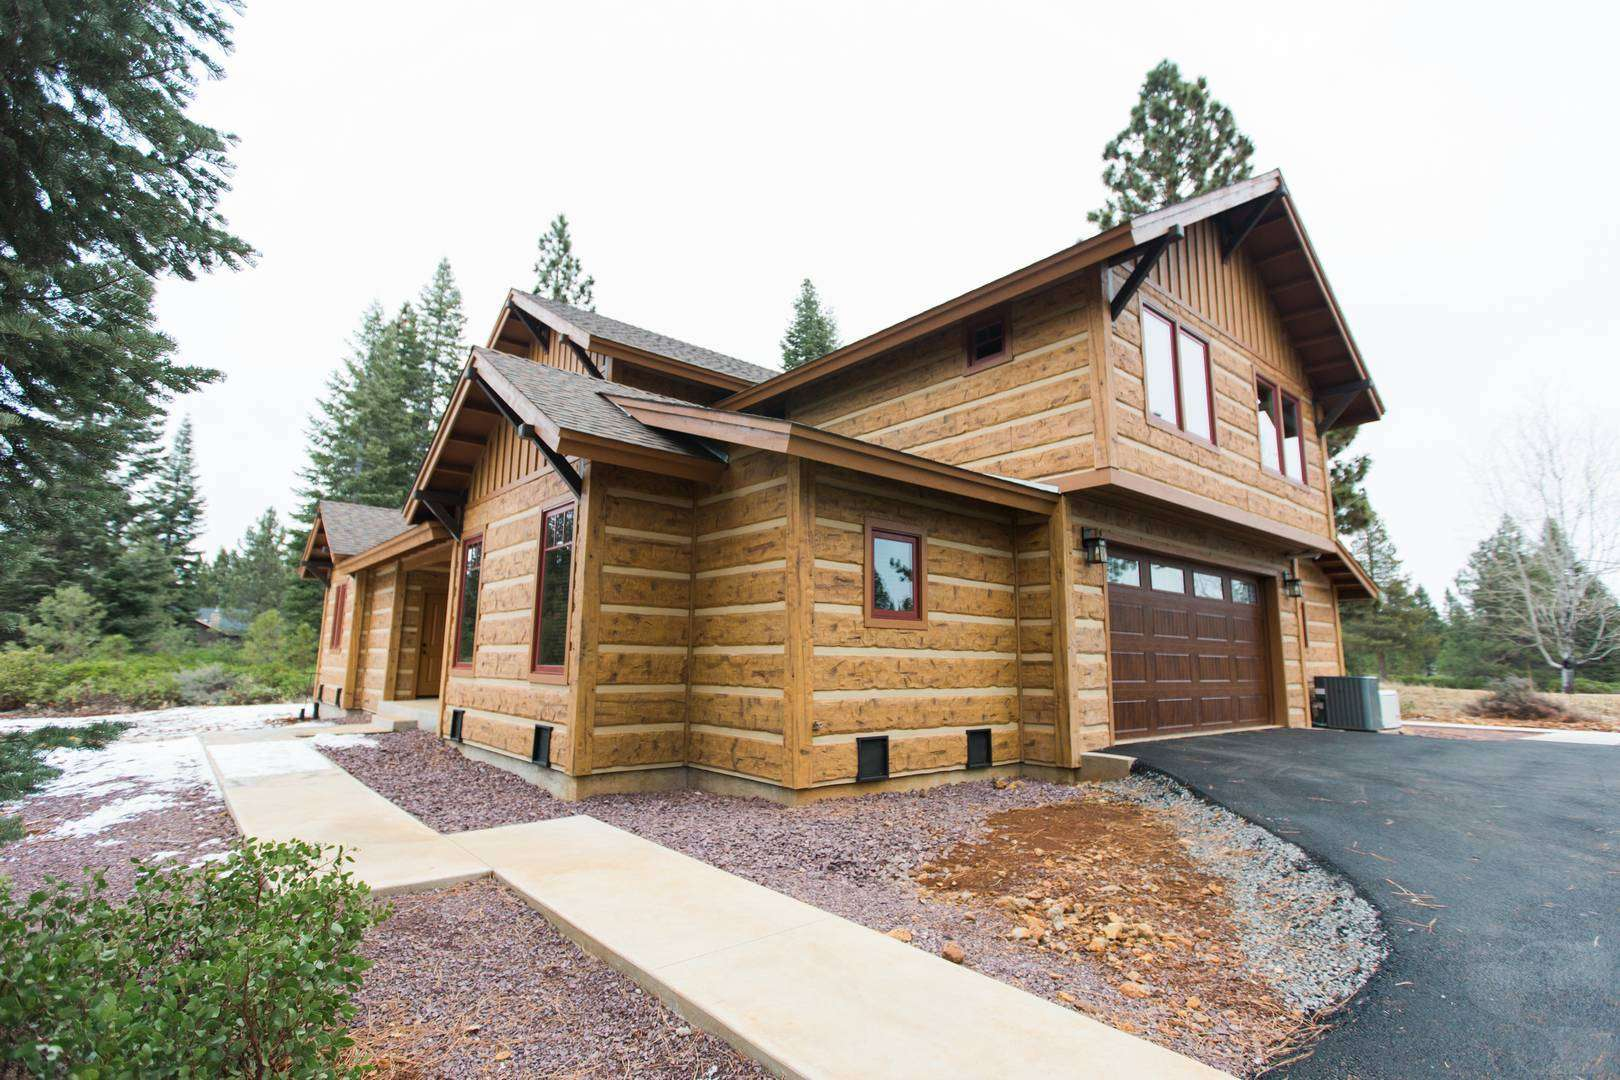 Lake Almanor, California Concrete Log Sided Cabin